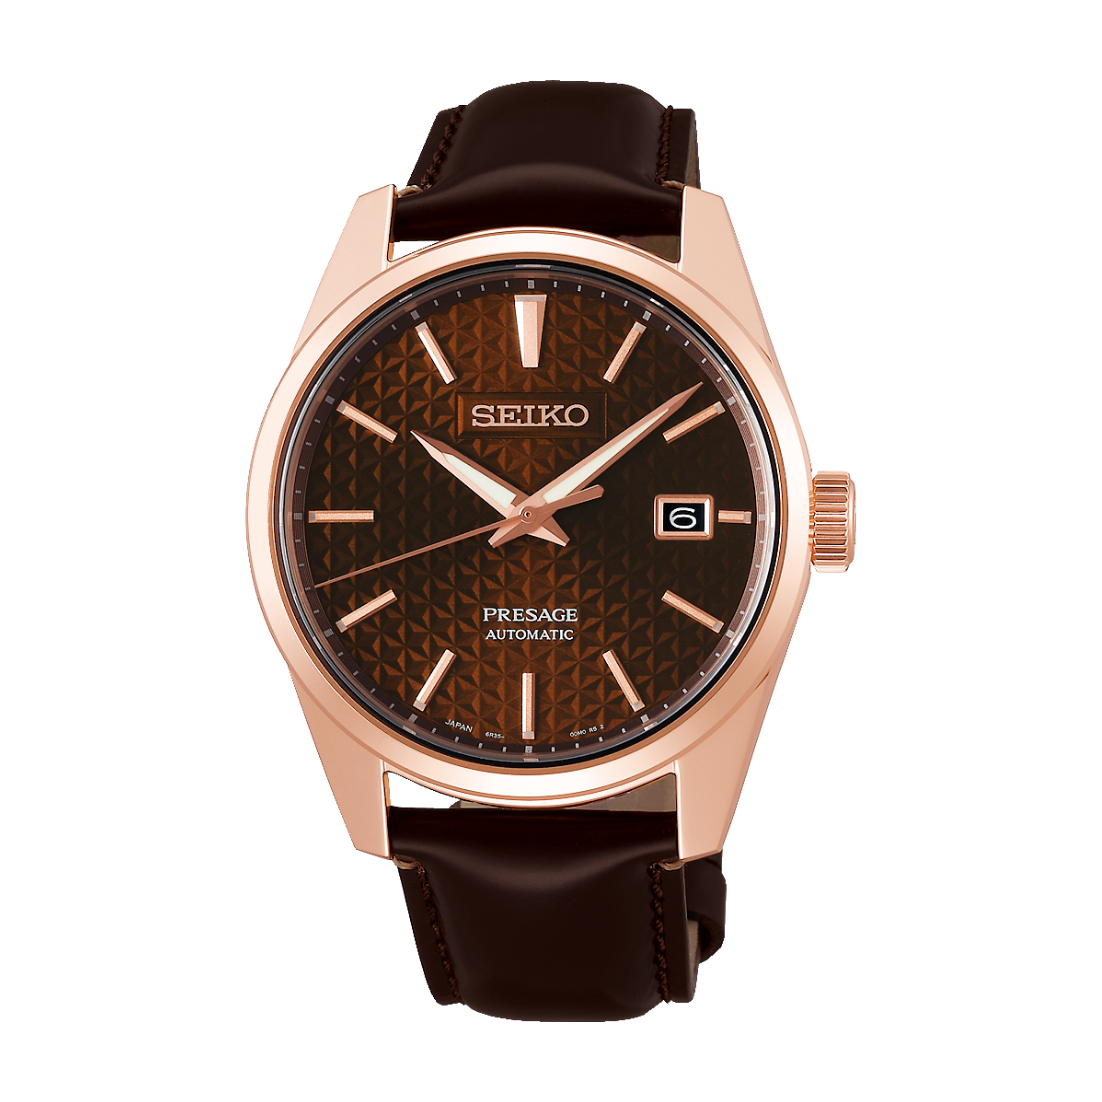 Seiko Presage Automatic Watch - Brown Dial